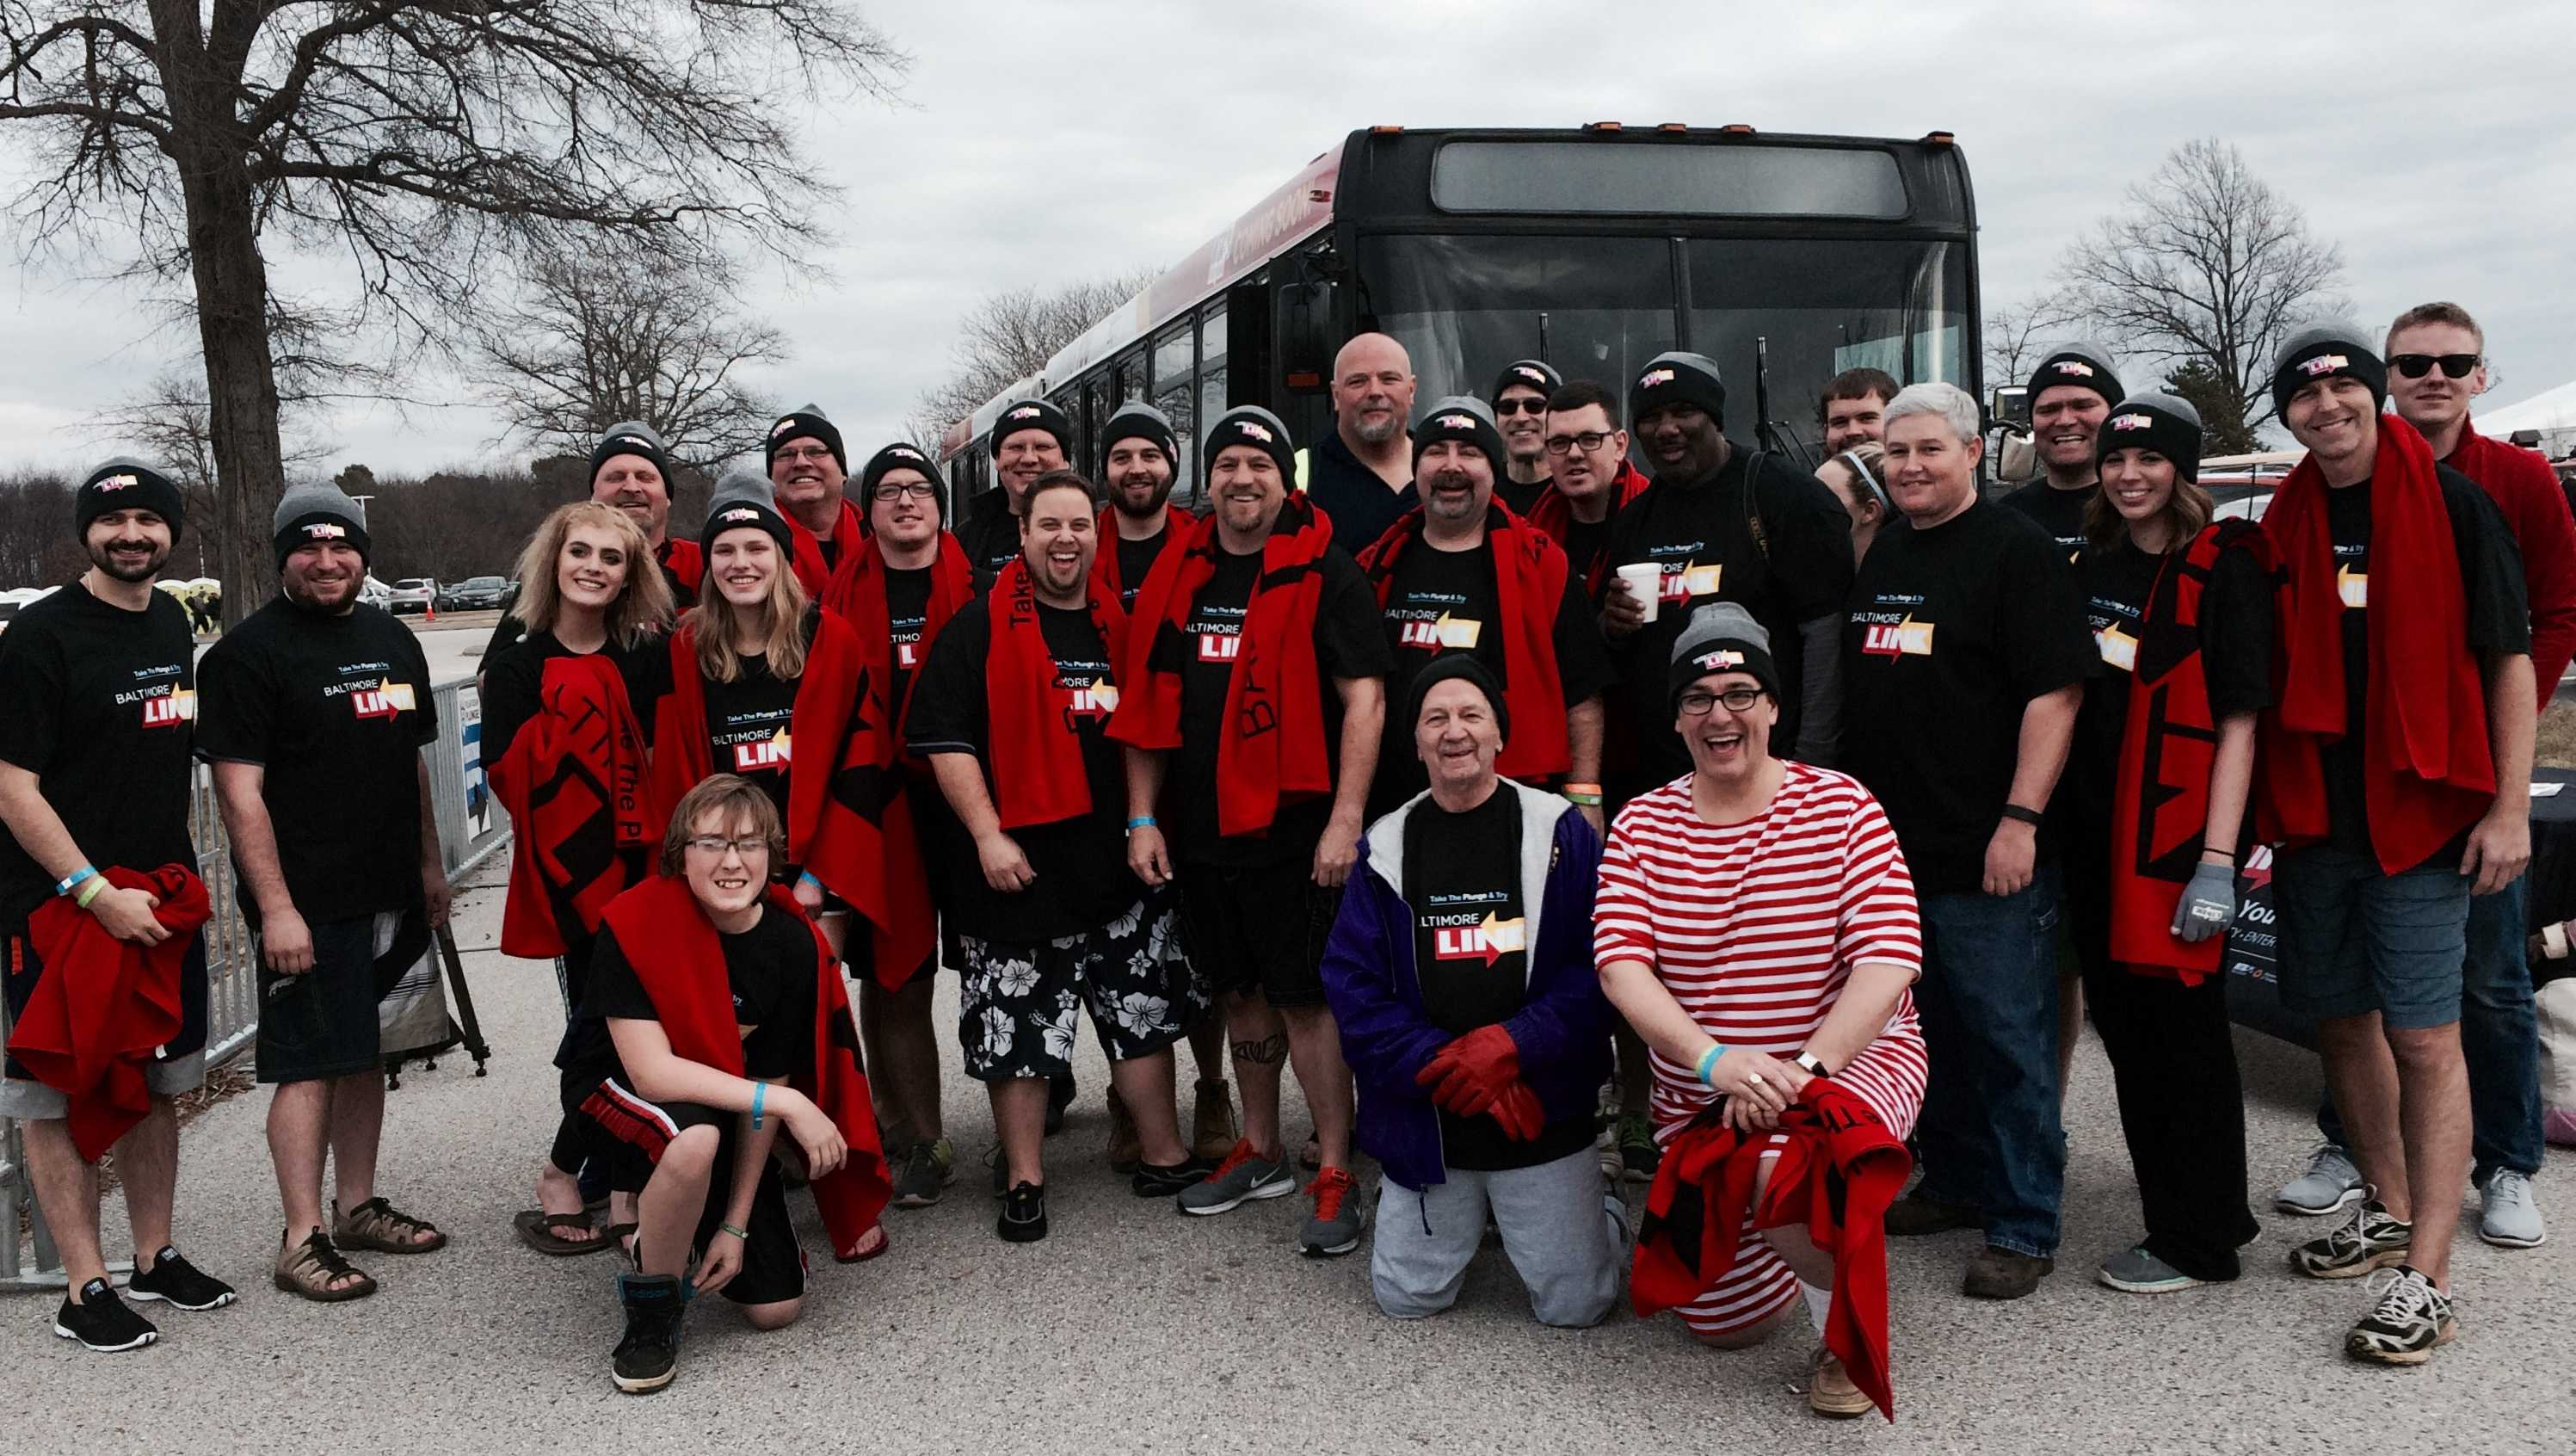 MTA team at the Polar Bear Plunge